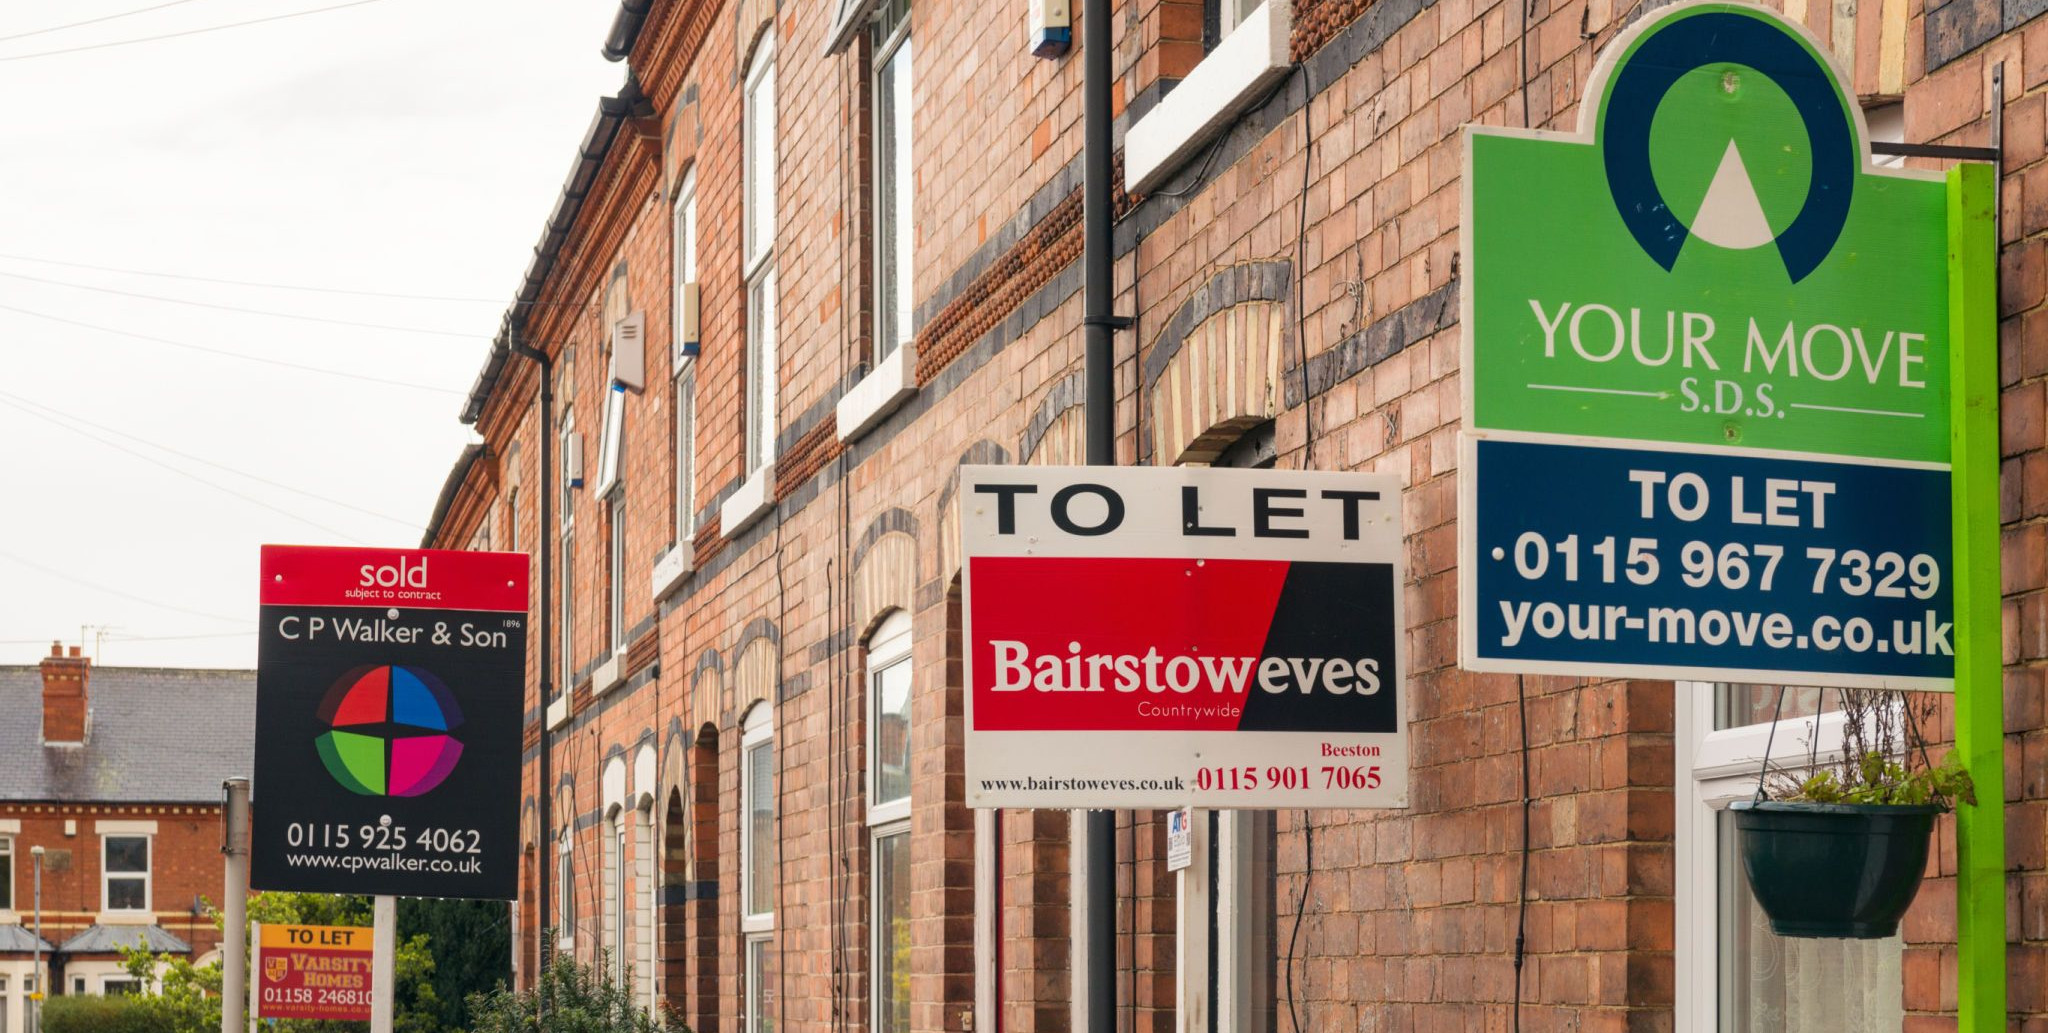 Why become a landlord if you can't regain possession? - LandlordZONE